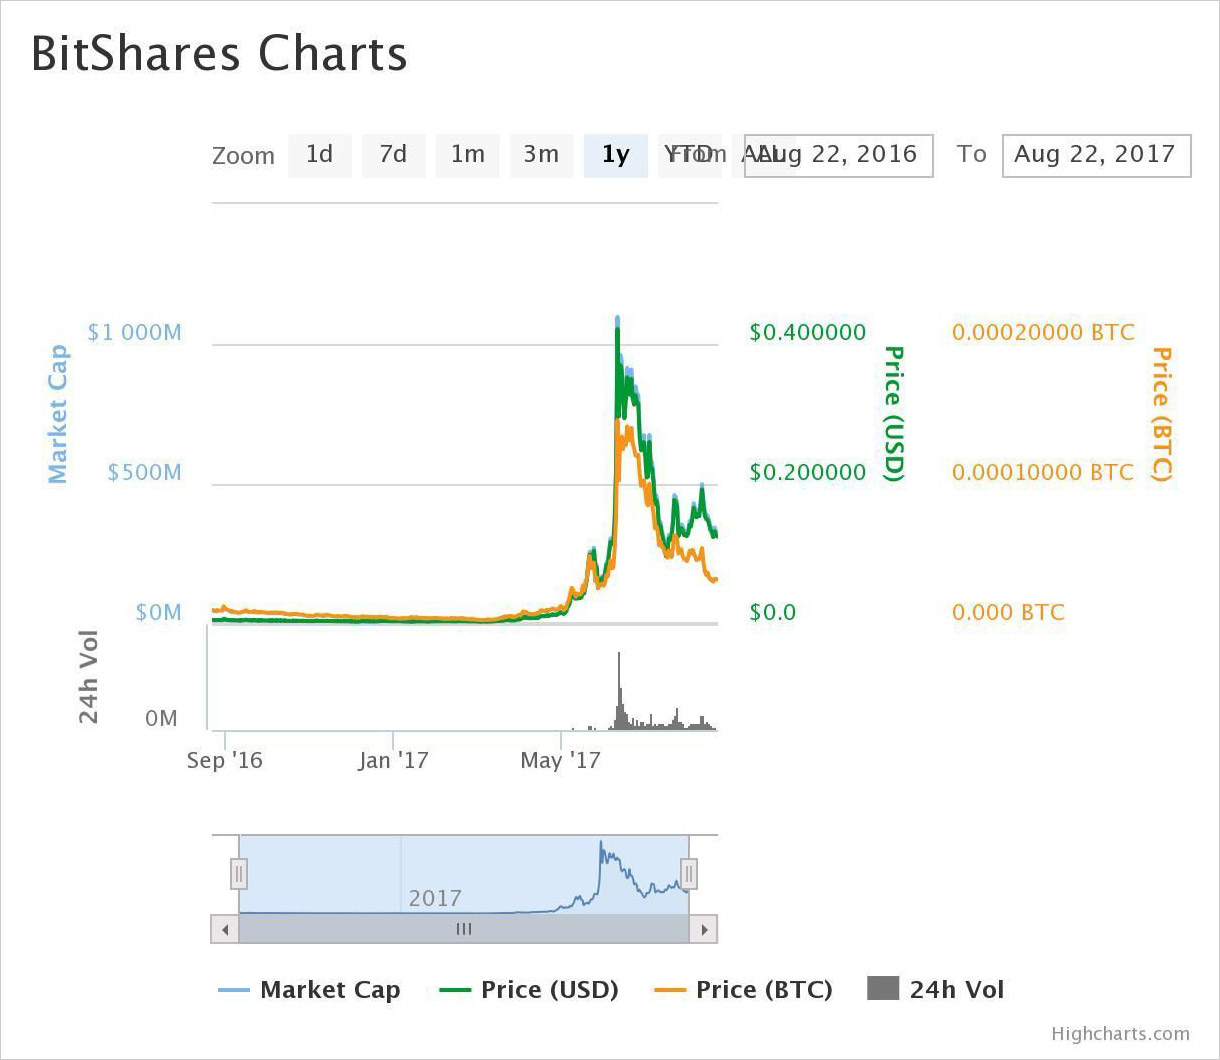 1-year price chart of BitShares